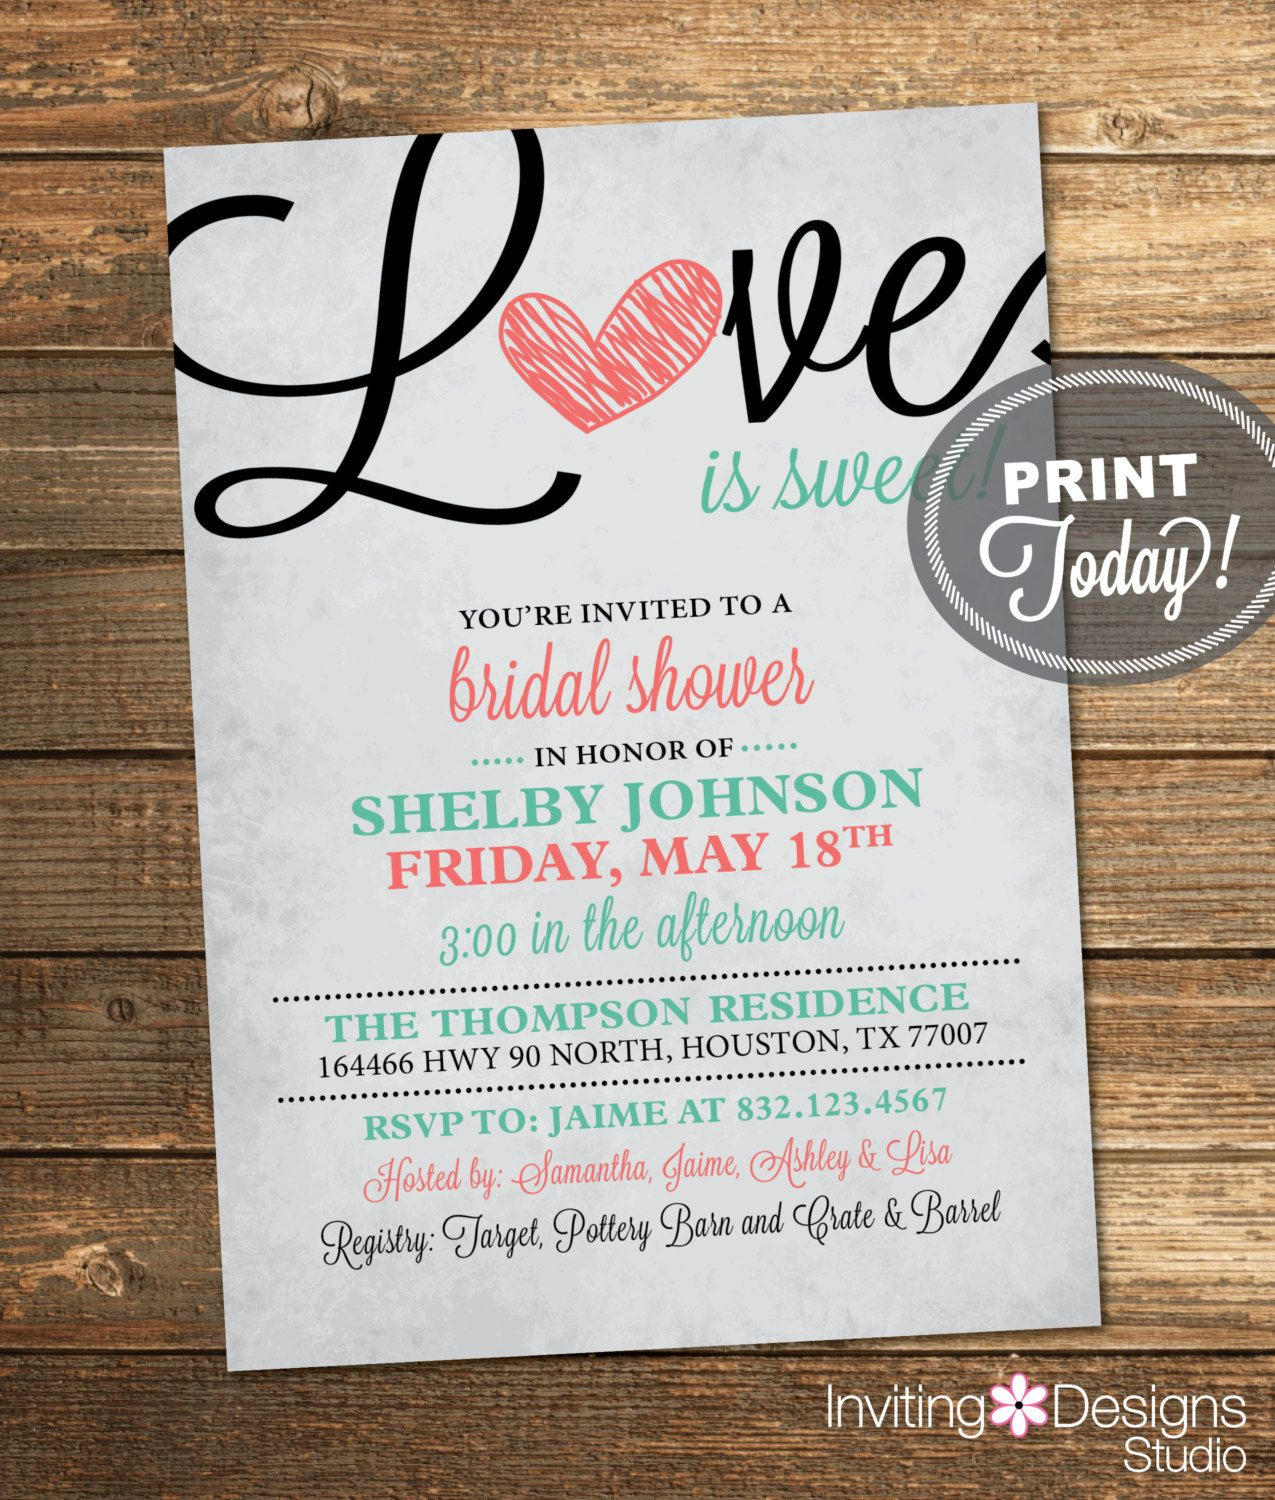 When Should Wedding Invitations Be Ordered: Bridal Shower Invitation, Love Is Sweet, Heart, Black